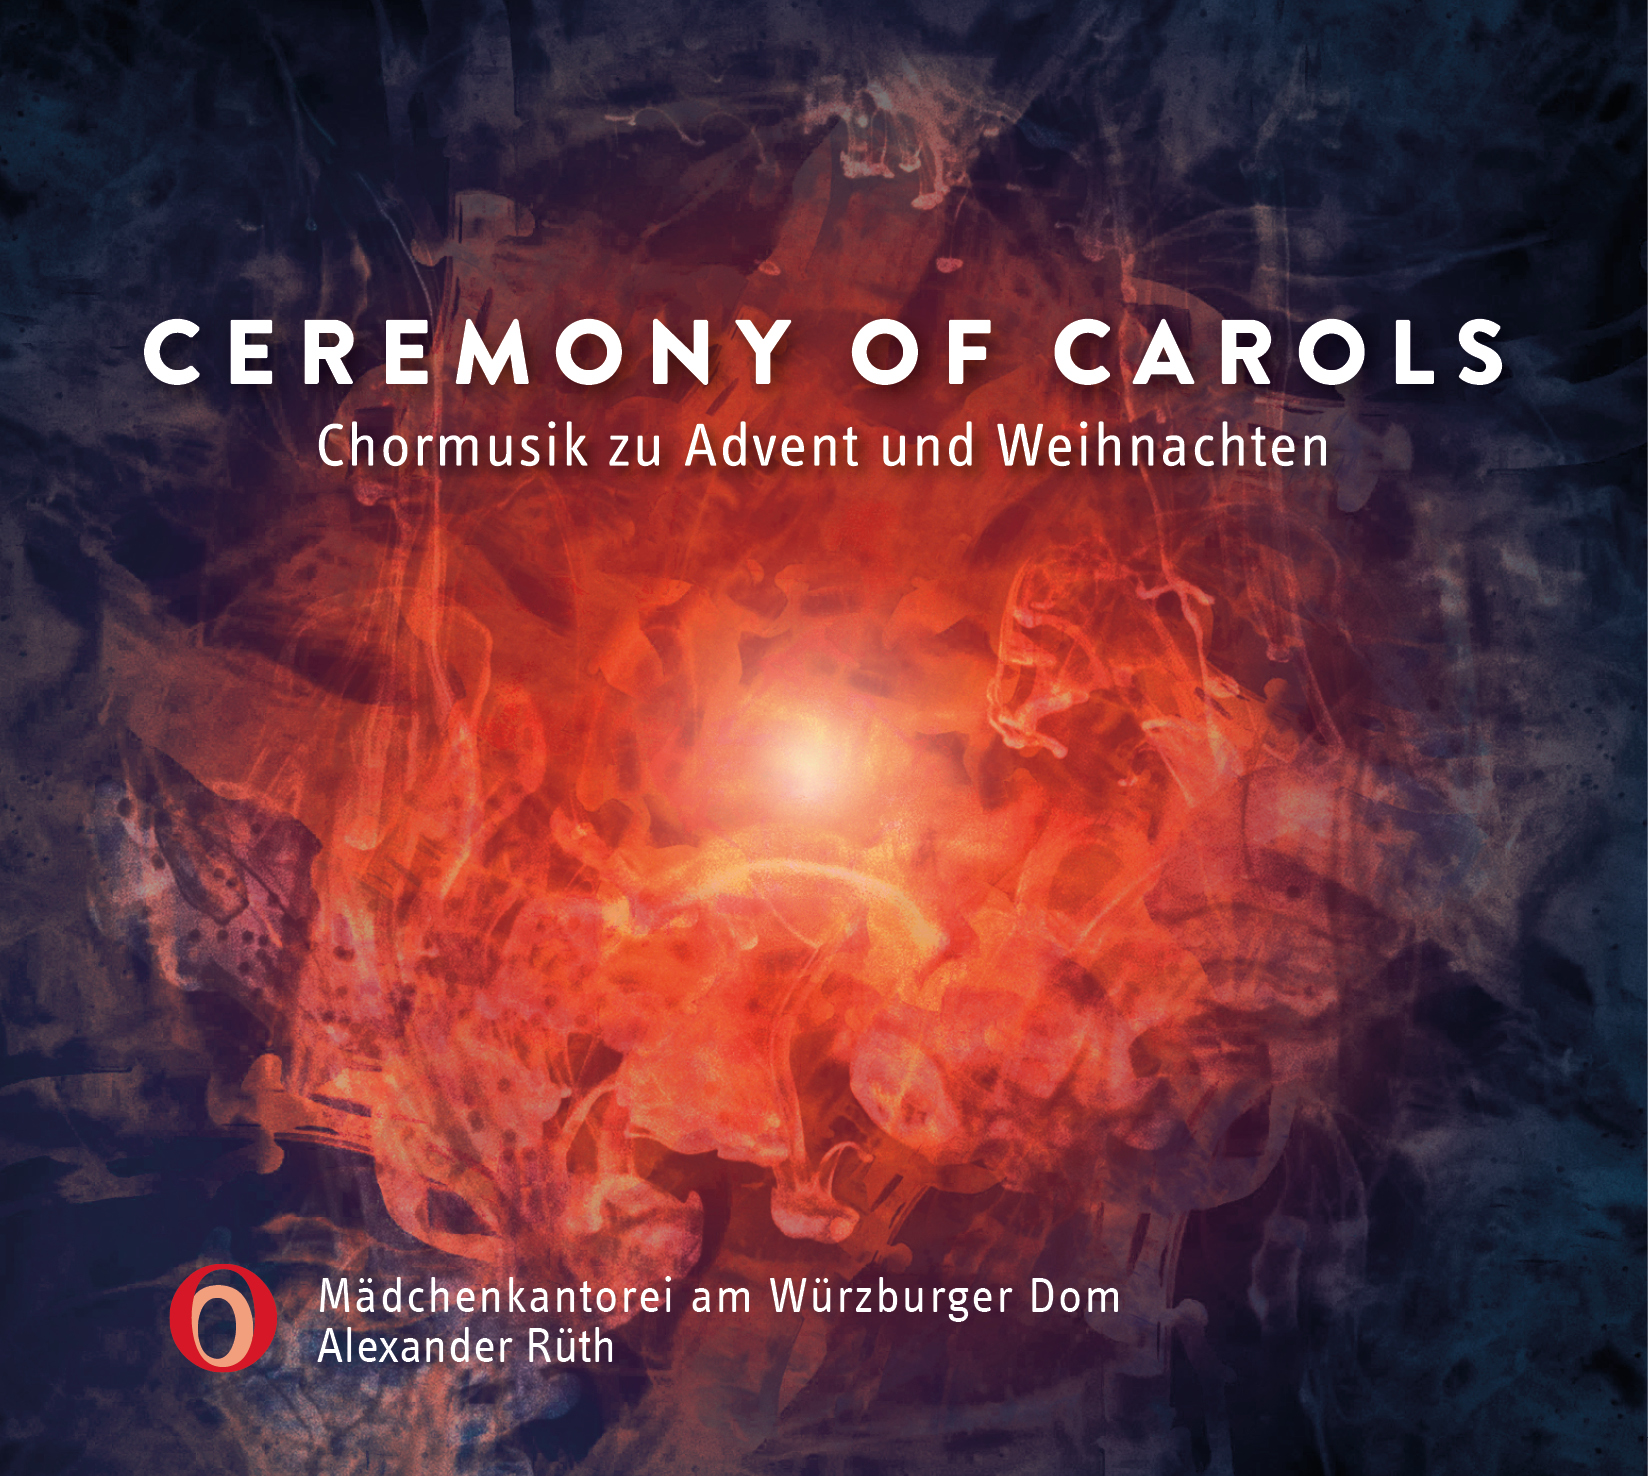 Ceremony of Carols - Chormusik zu Advent und Weihnachten | exando-music